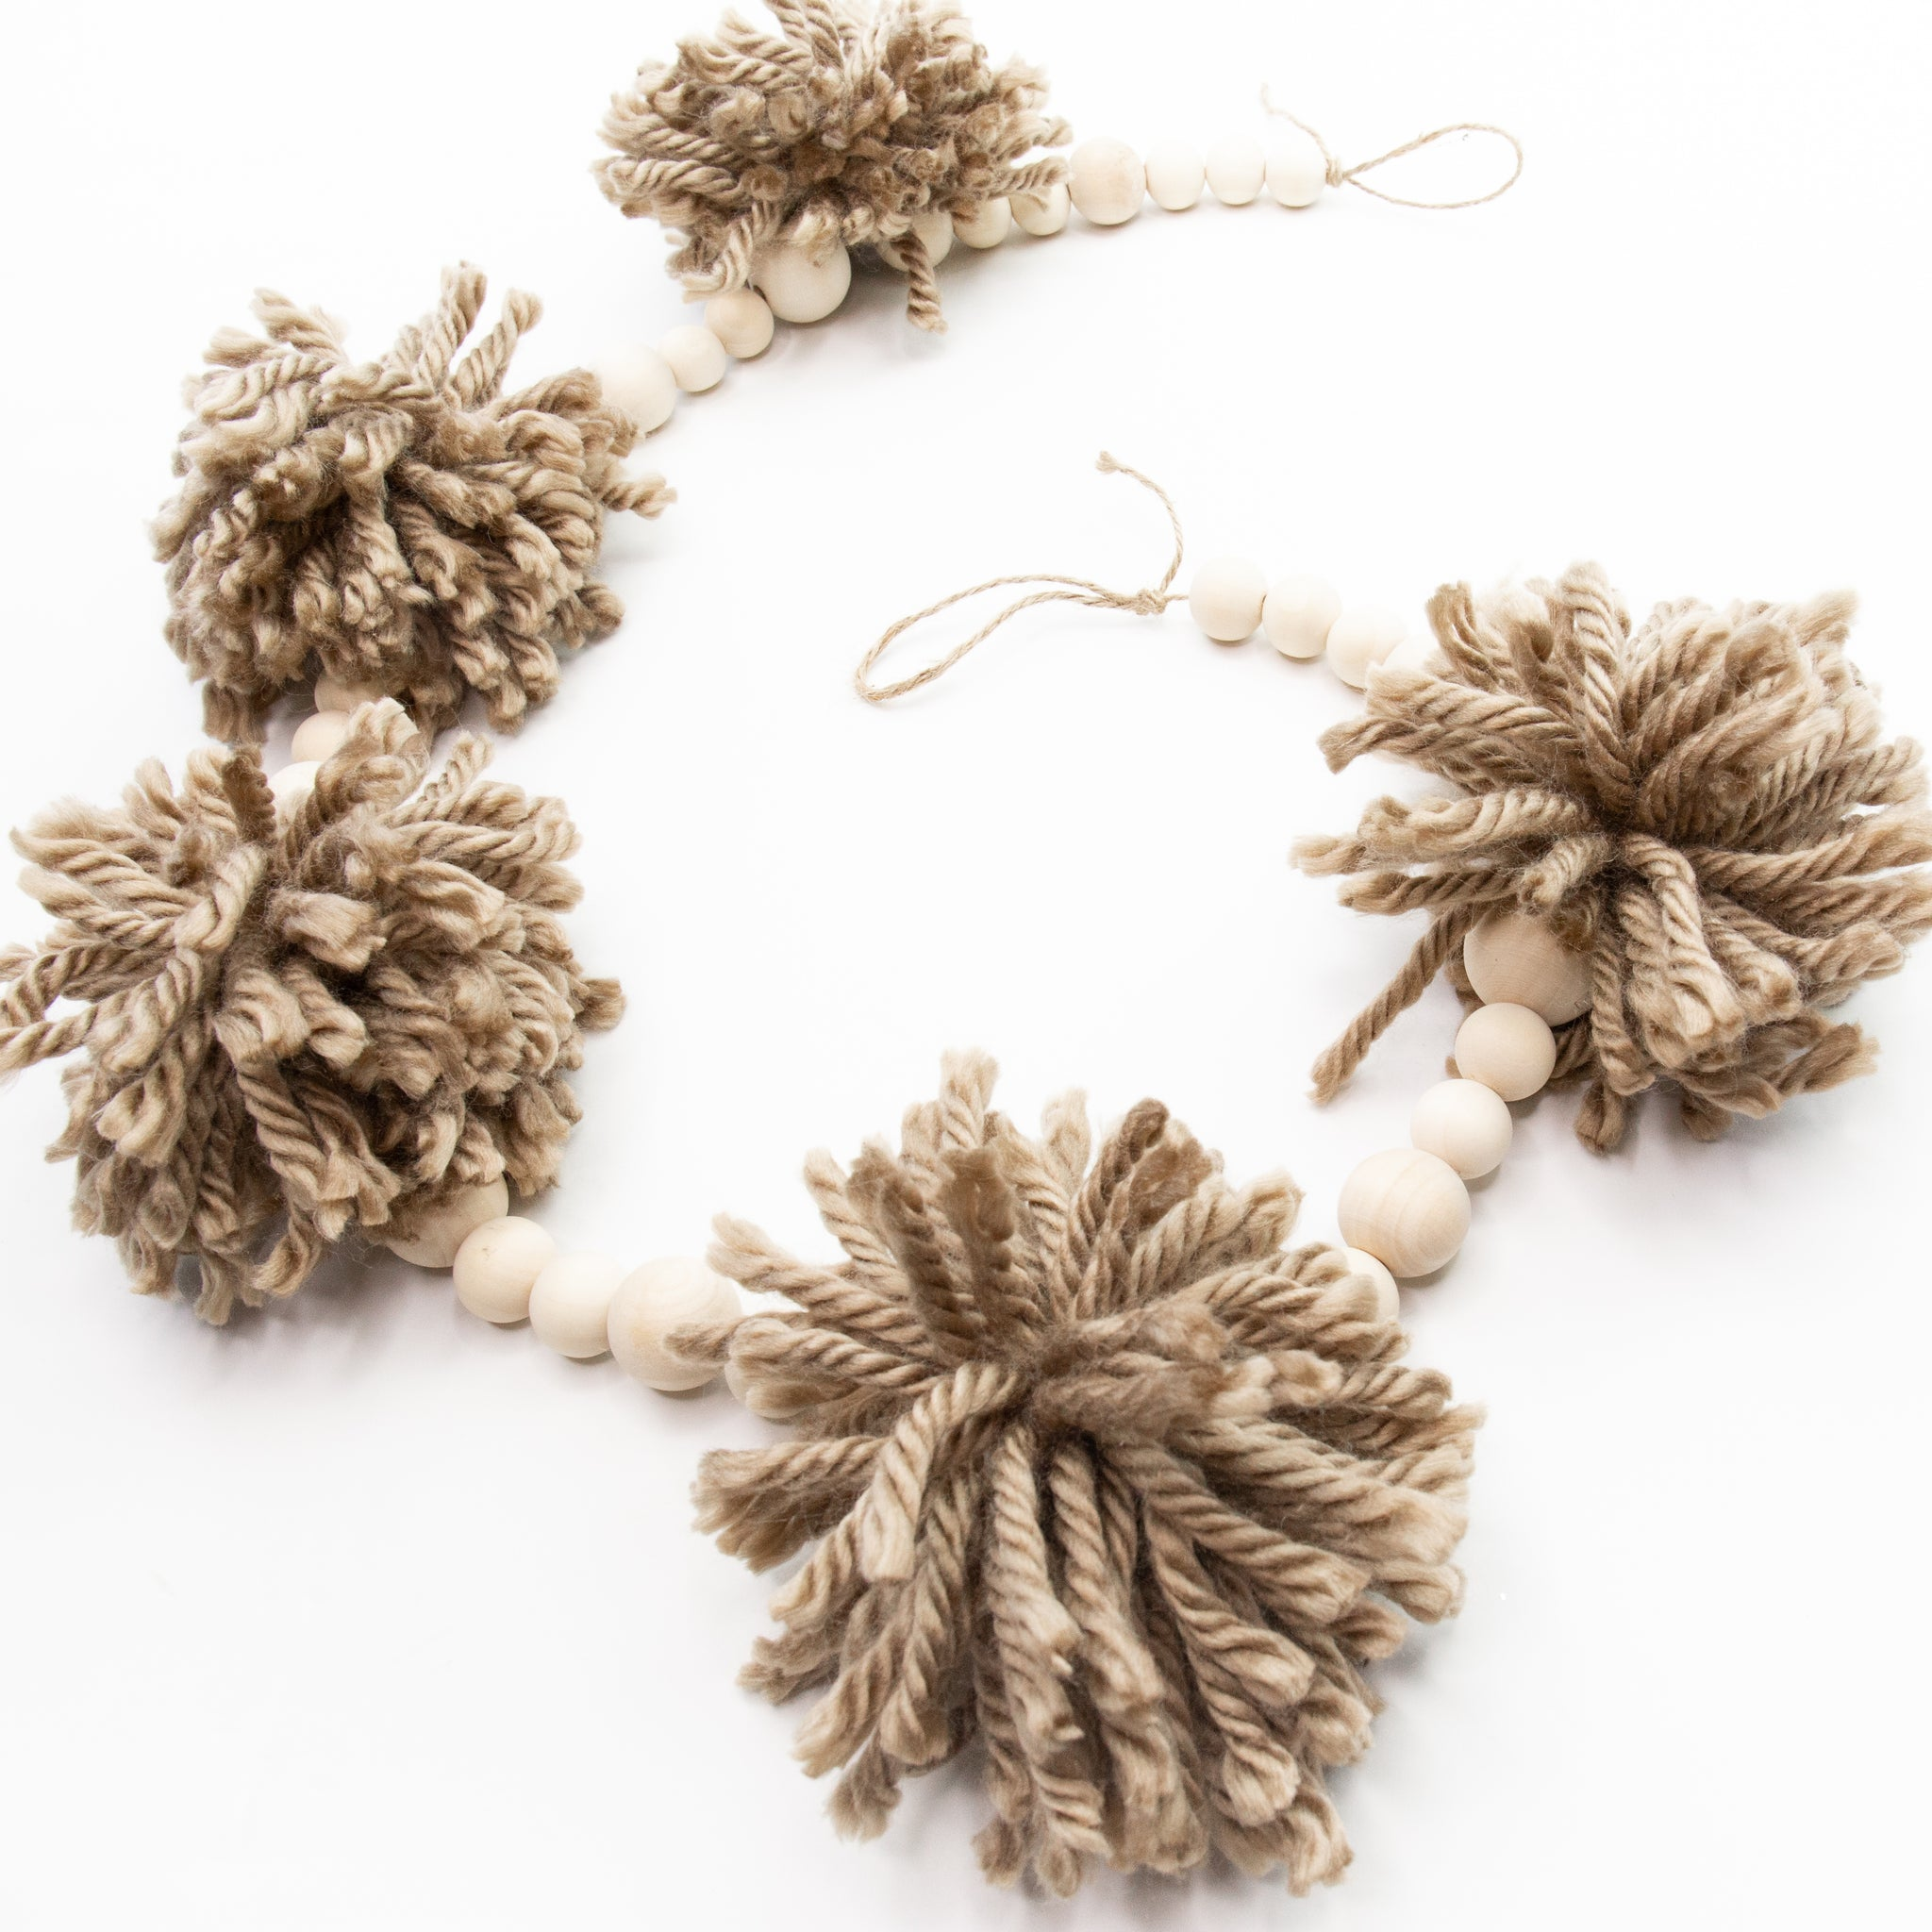 Beaded Wooden Pom Pom Garland